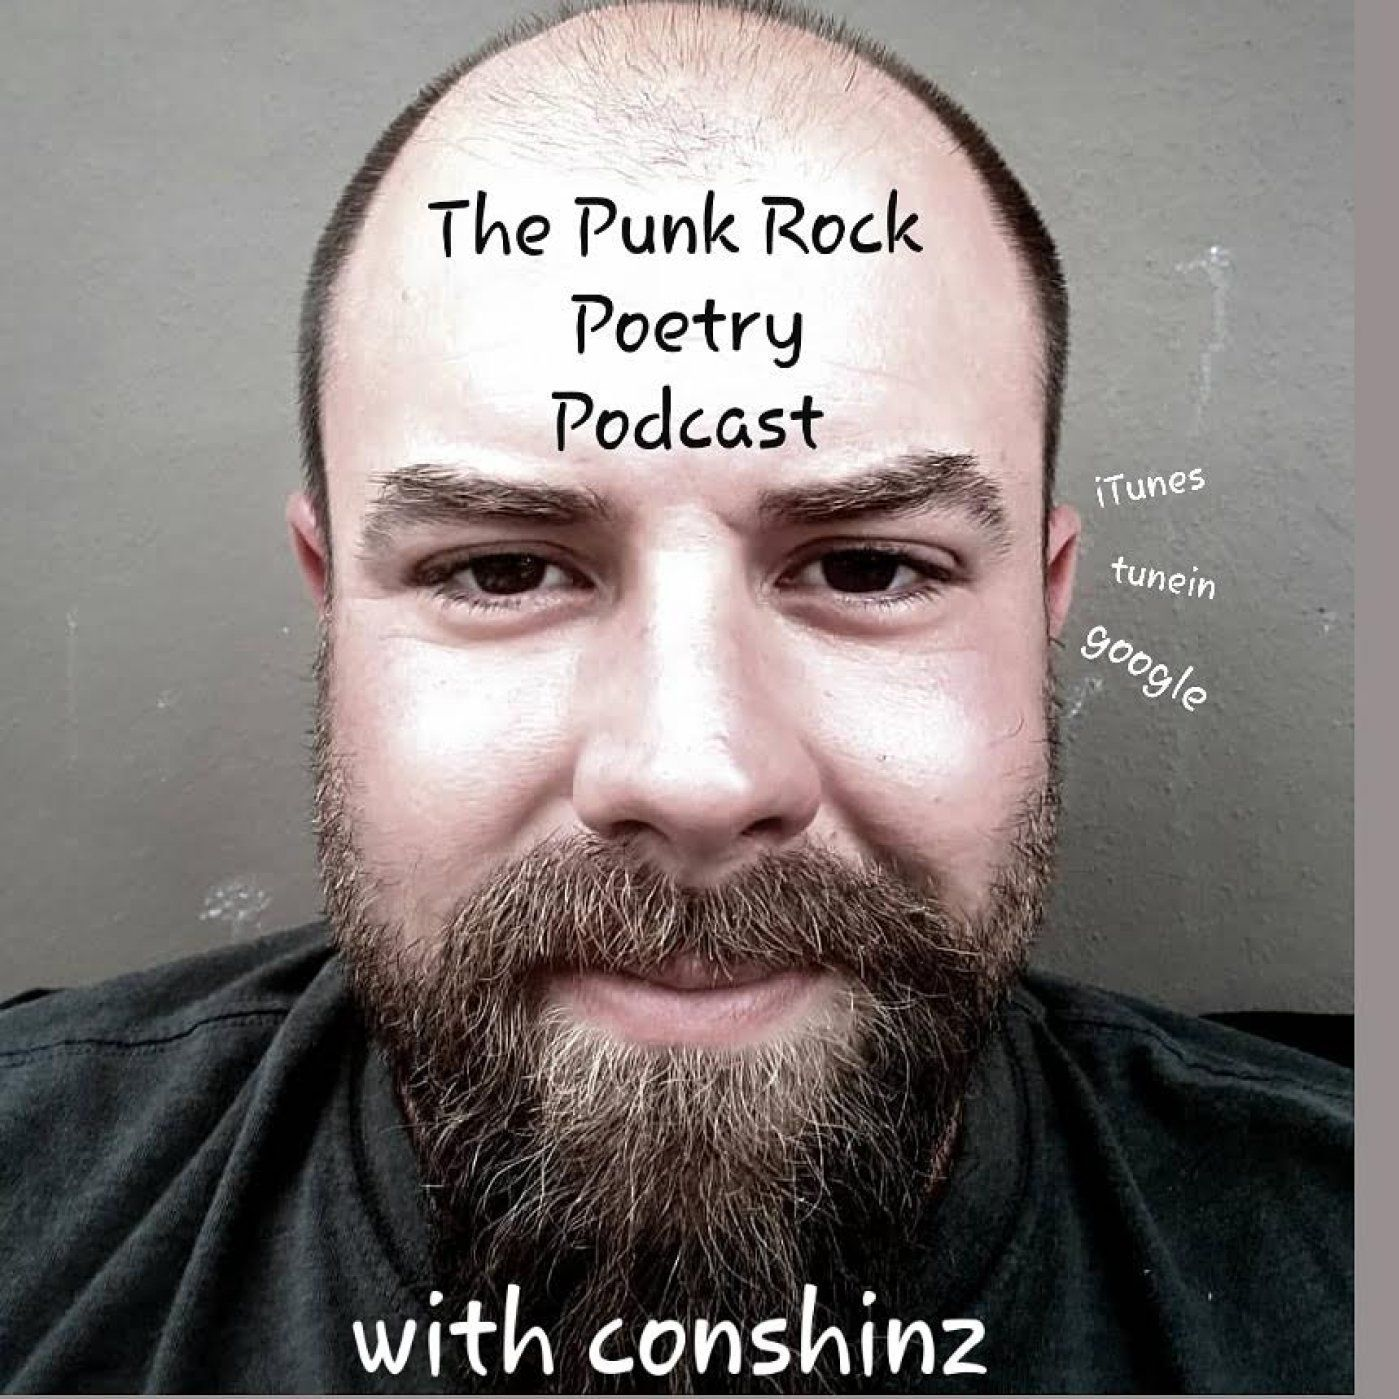 The Punk Rock Poetry Podcast 10 02 2019